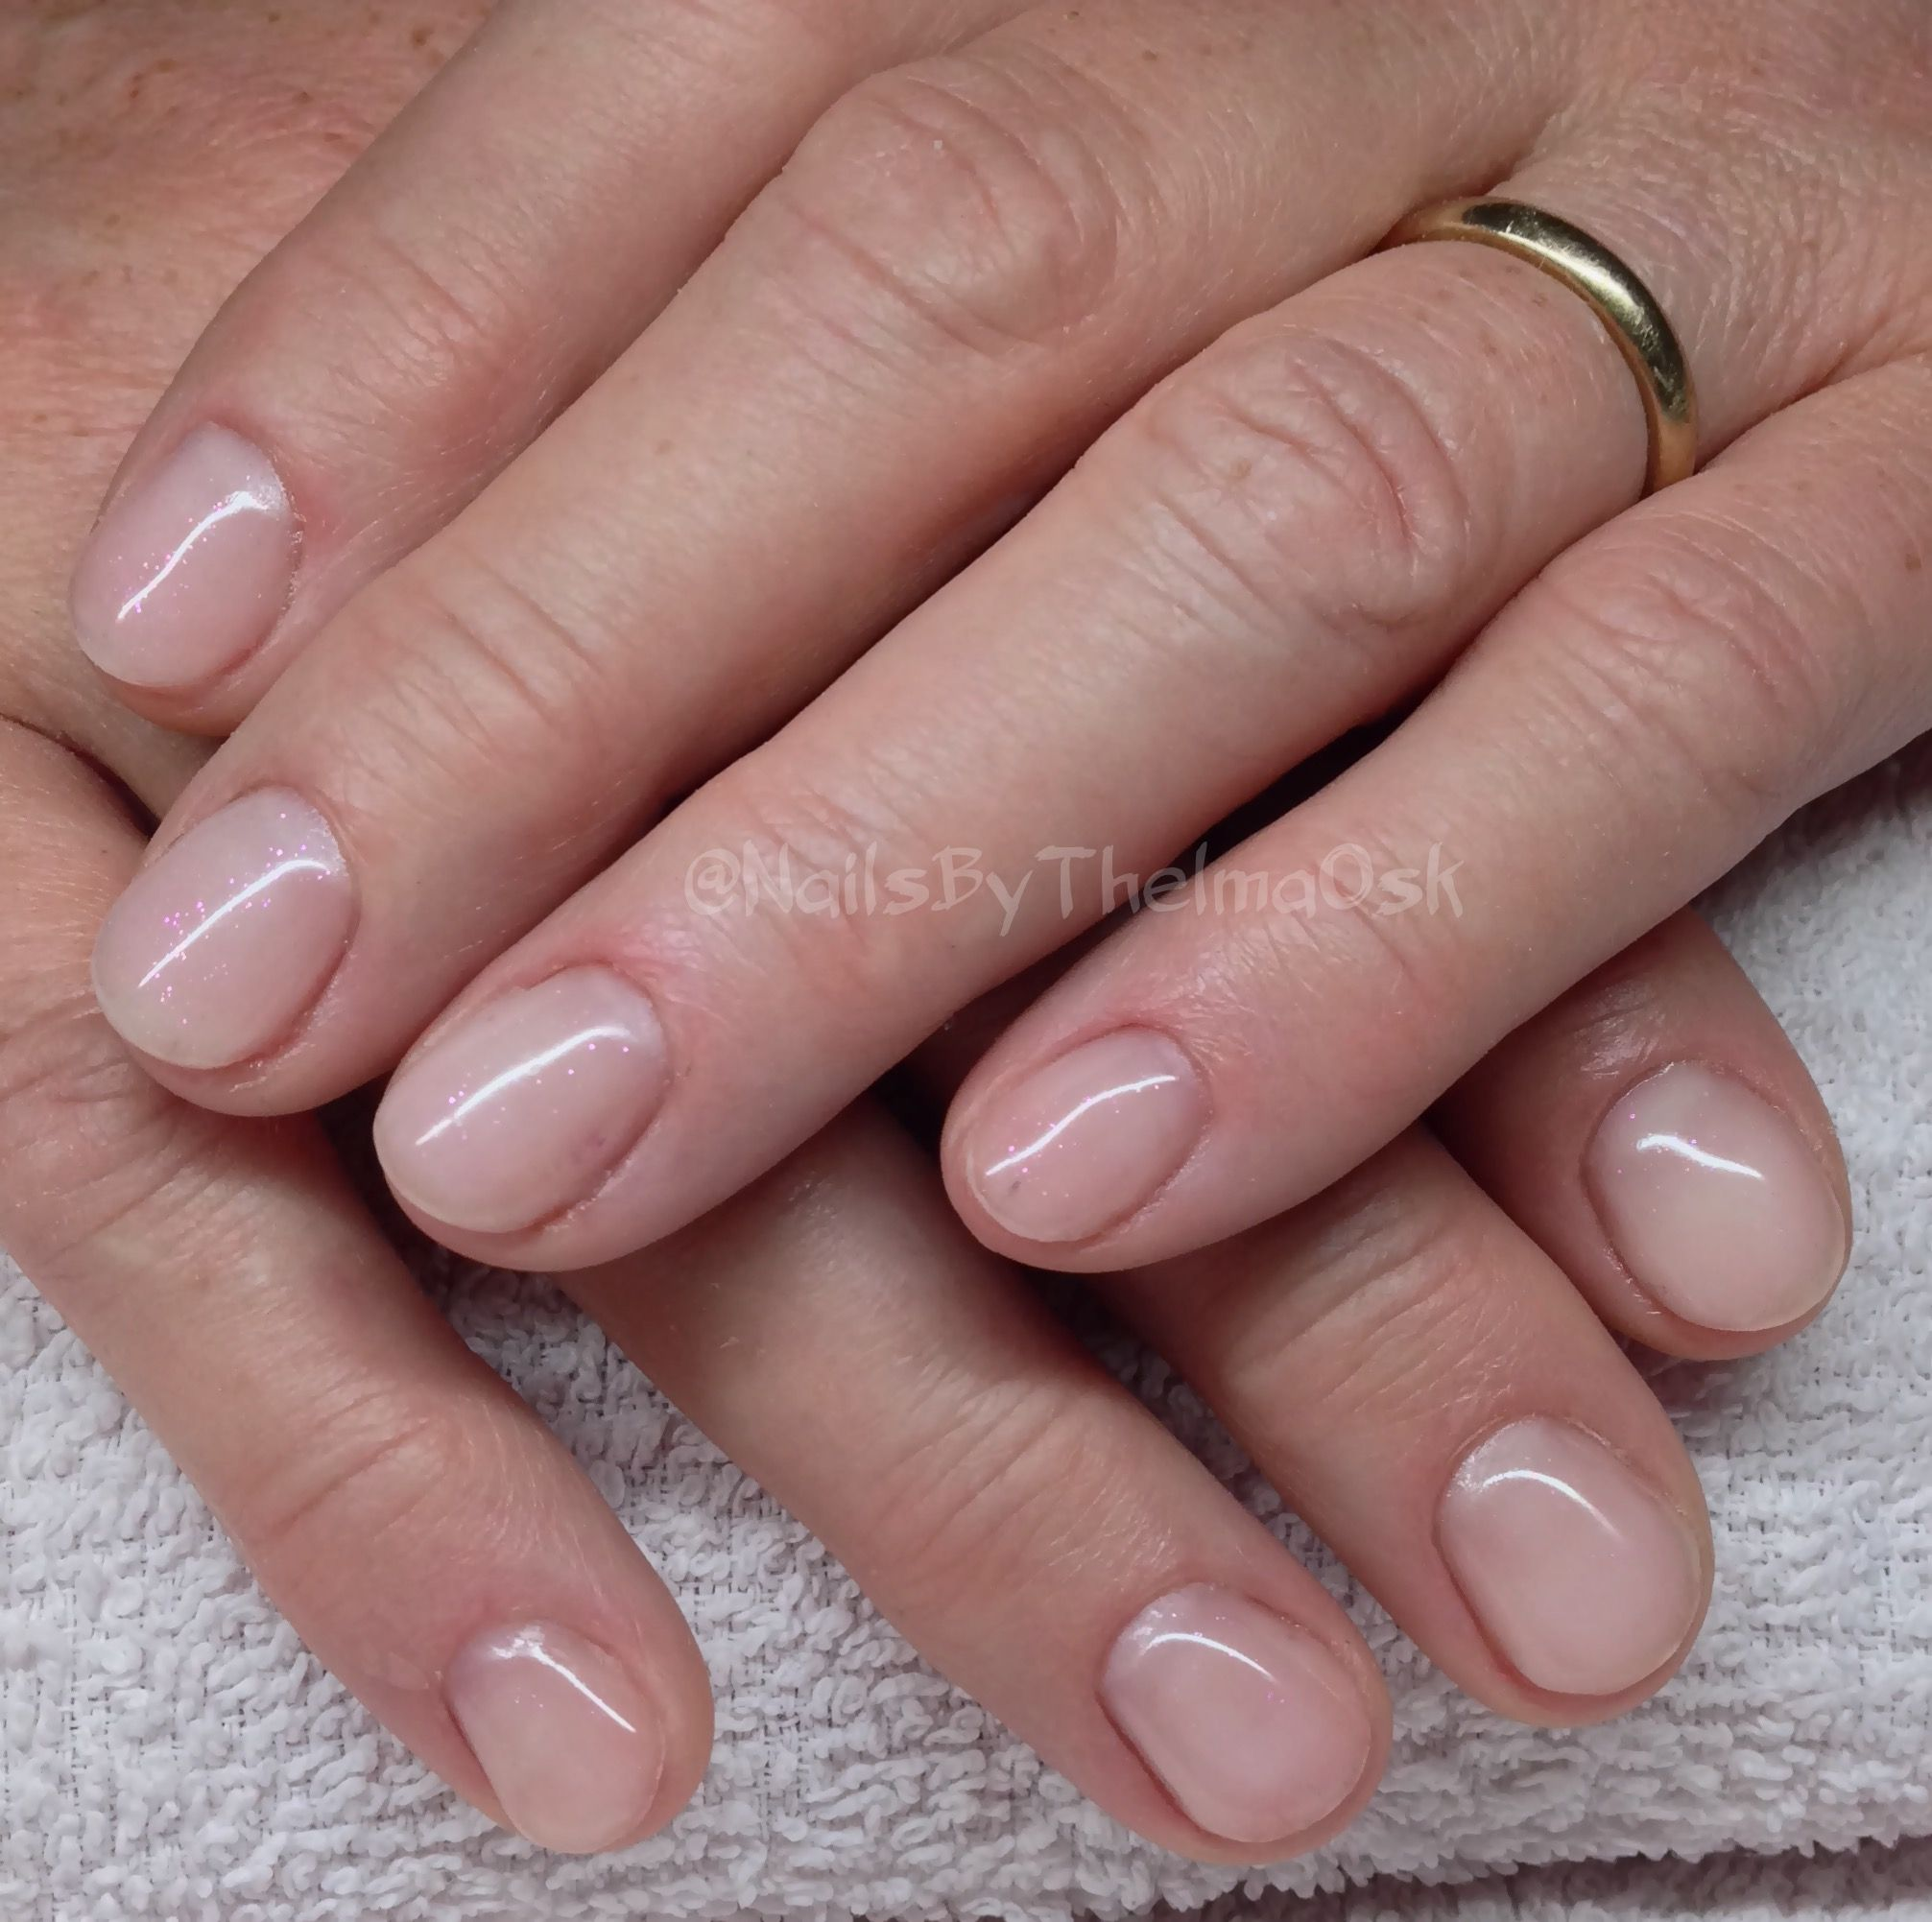 Beautiful natural soft pink gel nails with a hint of purple shimmer ...